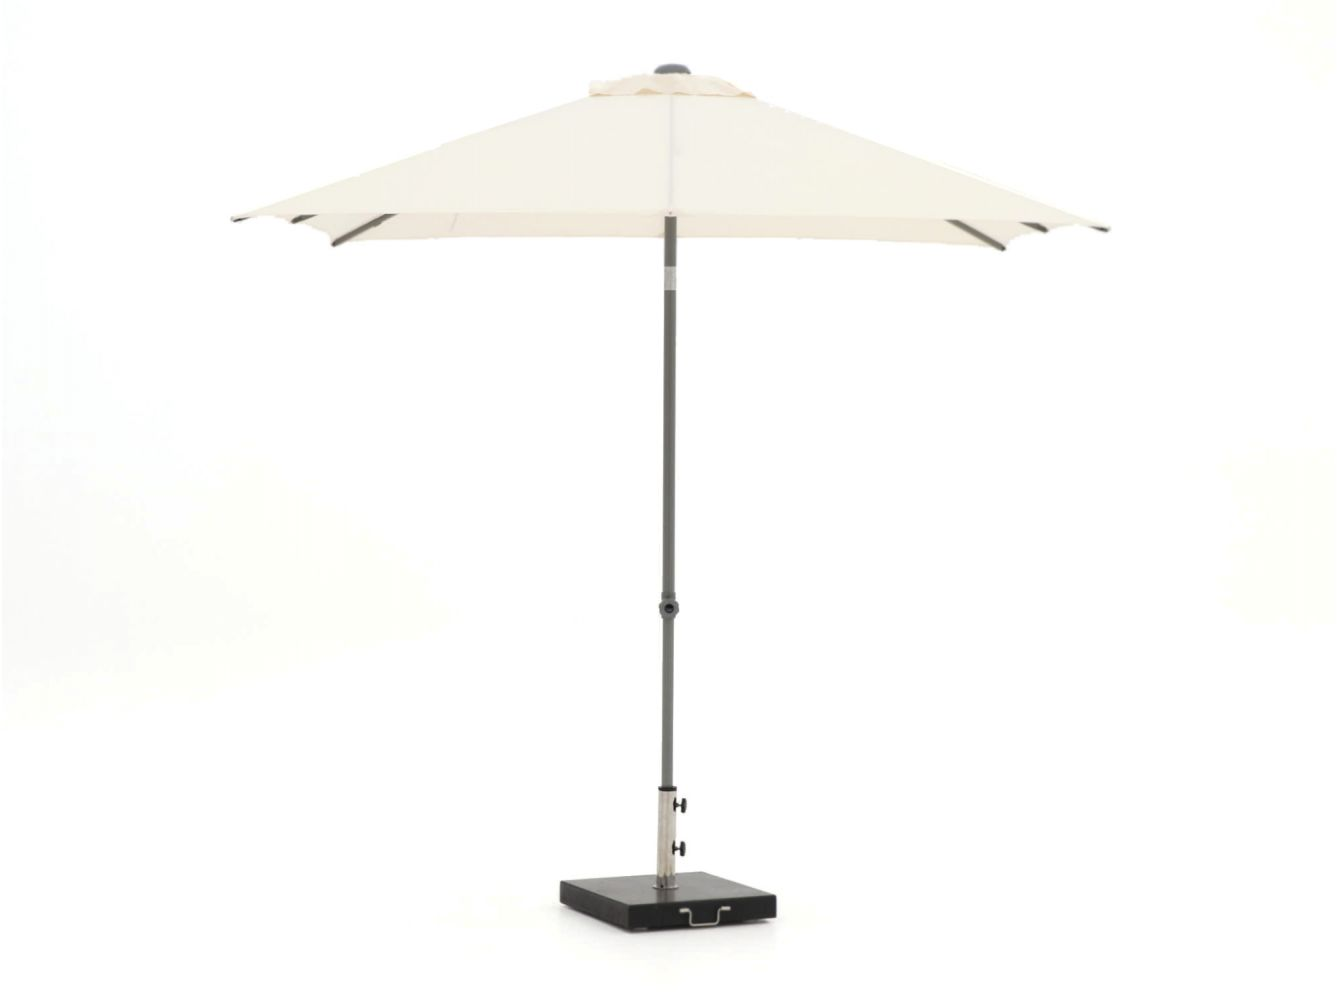 Shadowline Push-up parasol 240x240cm